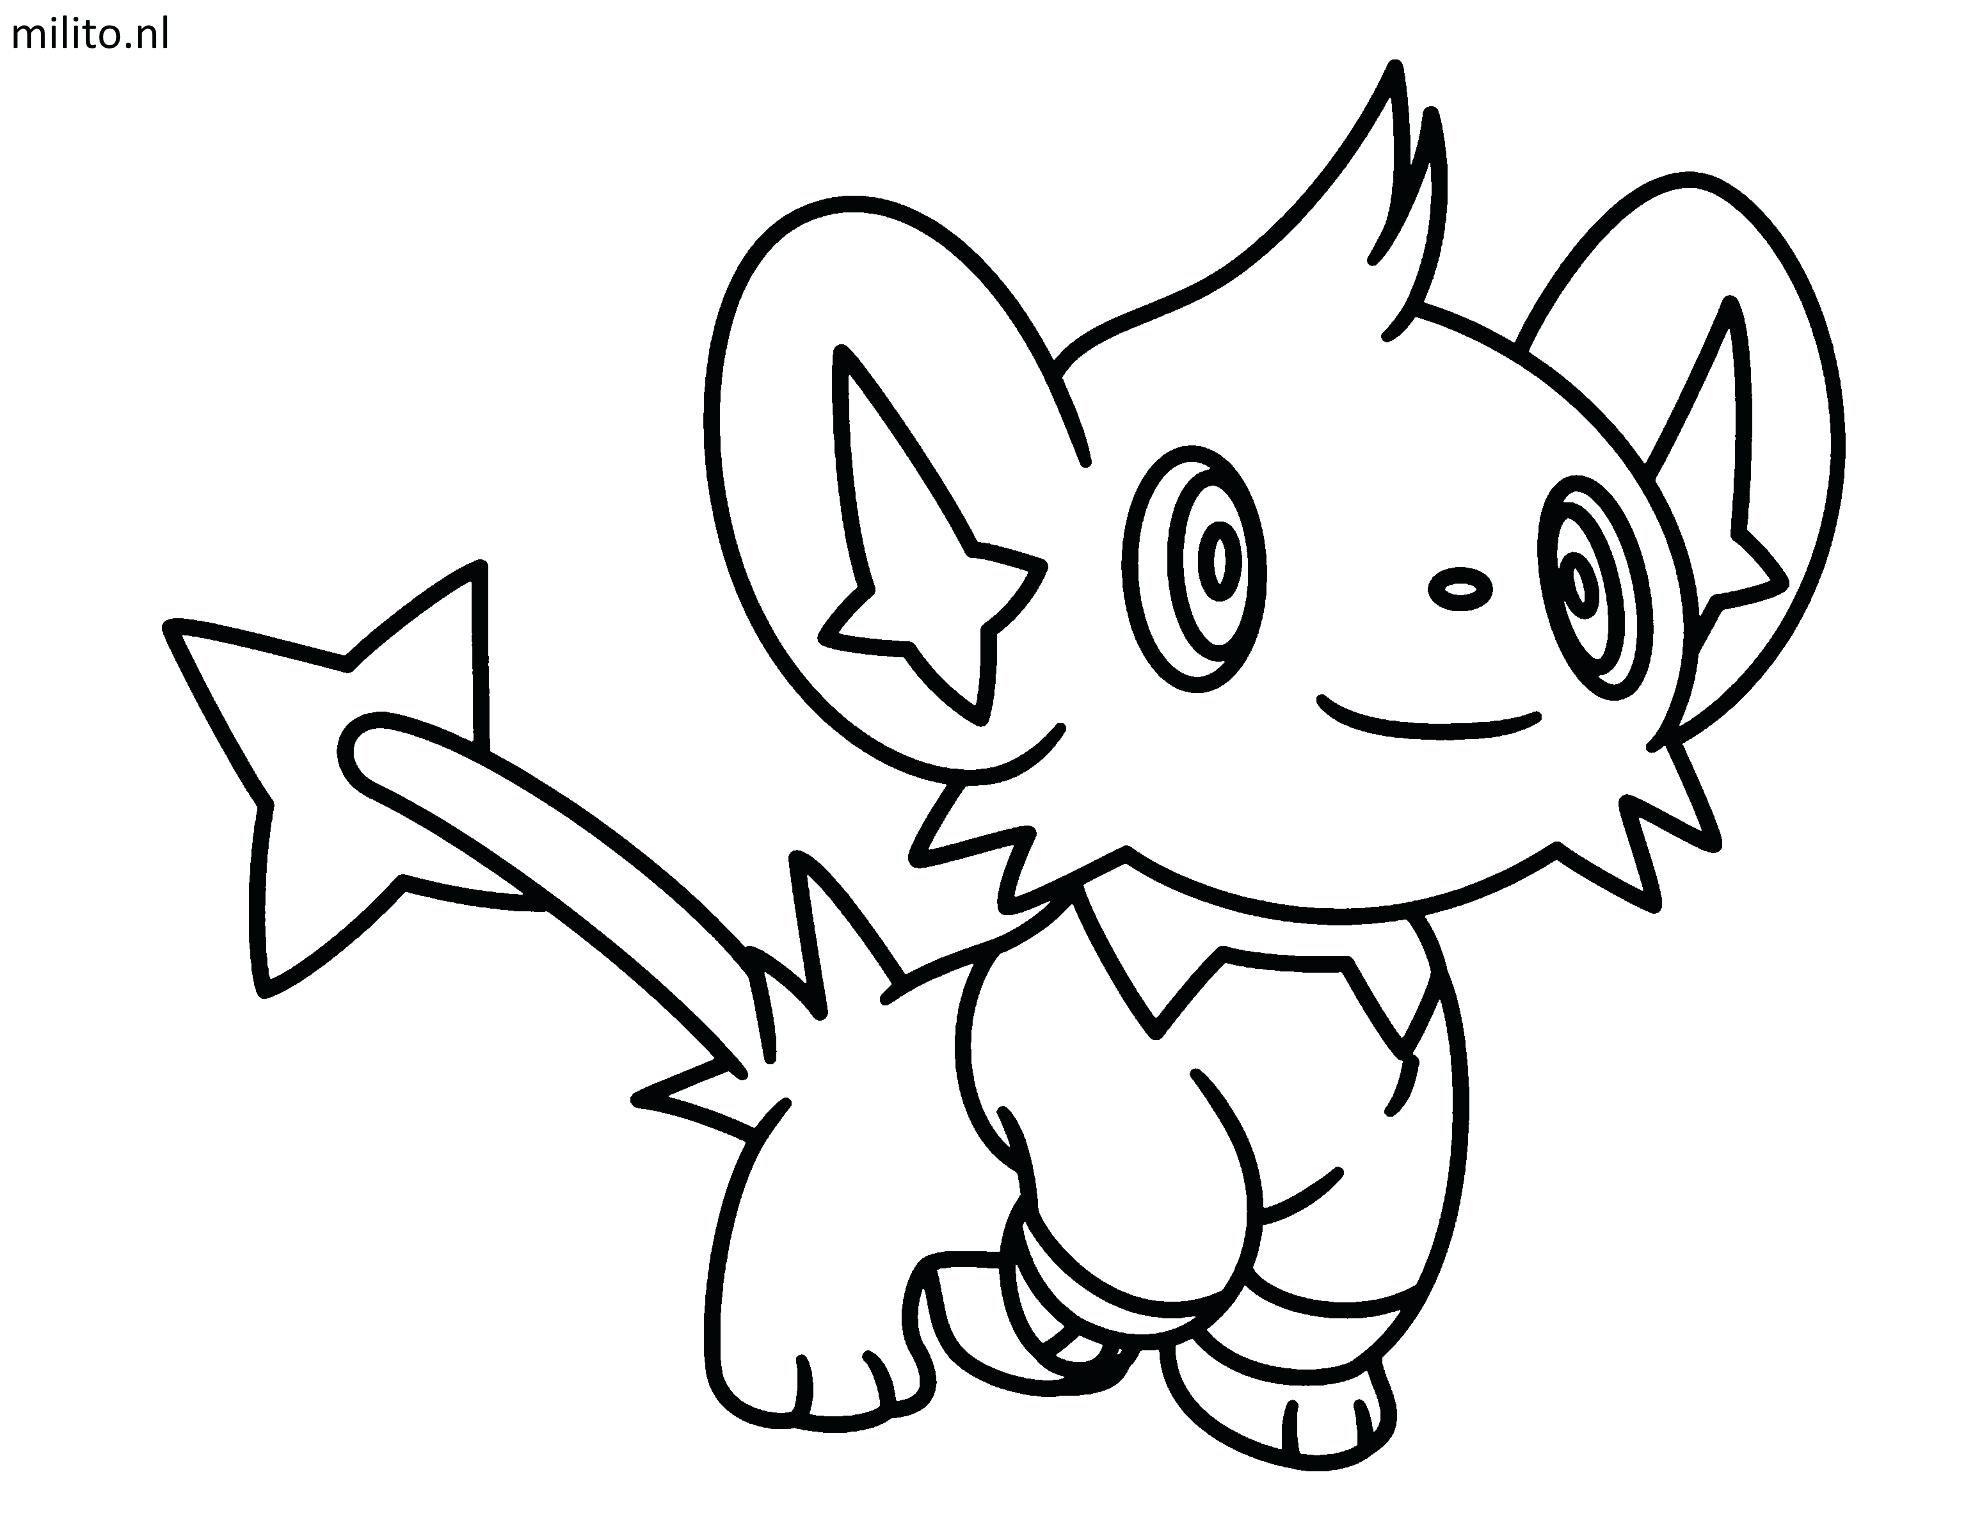 1984x1536 Mudkip Coloring Pages 8 18 7